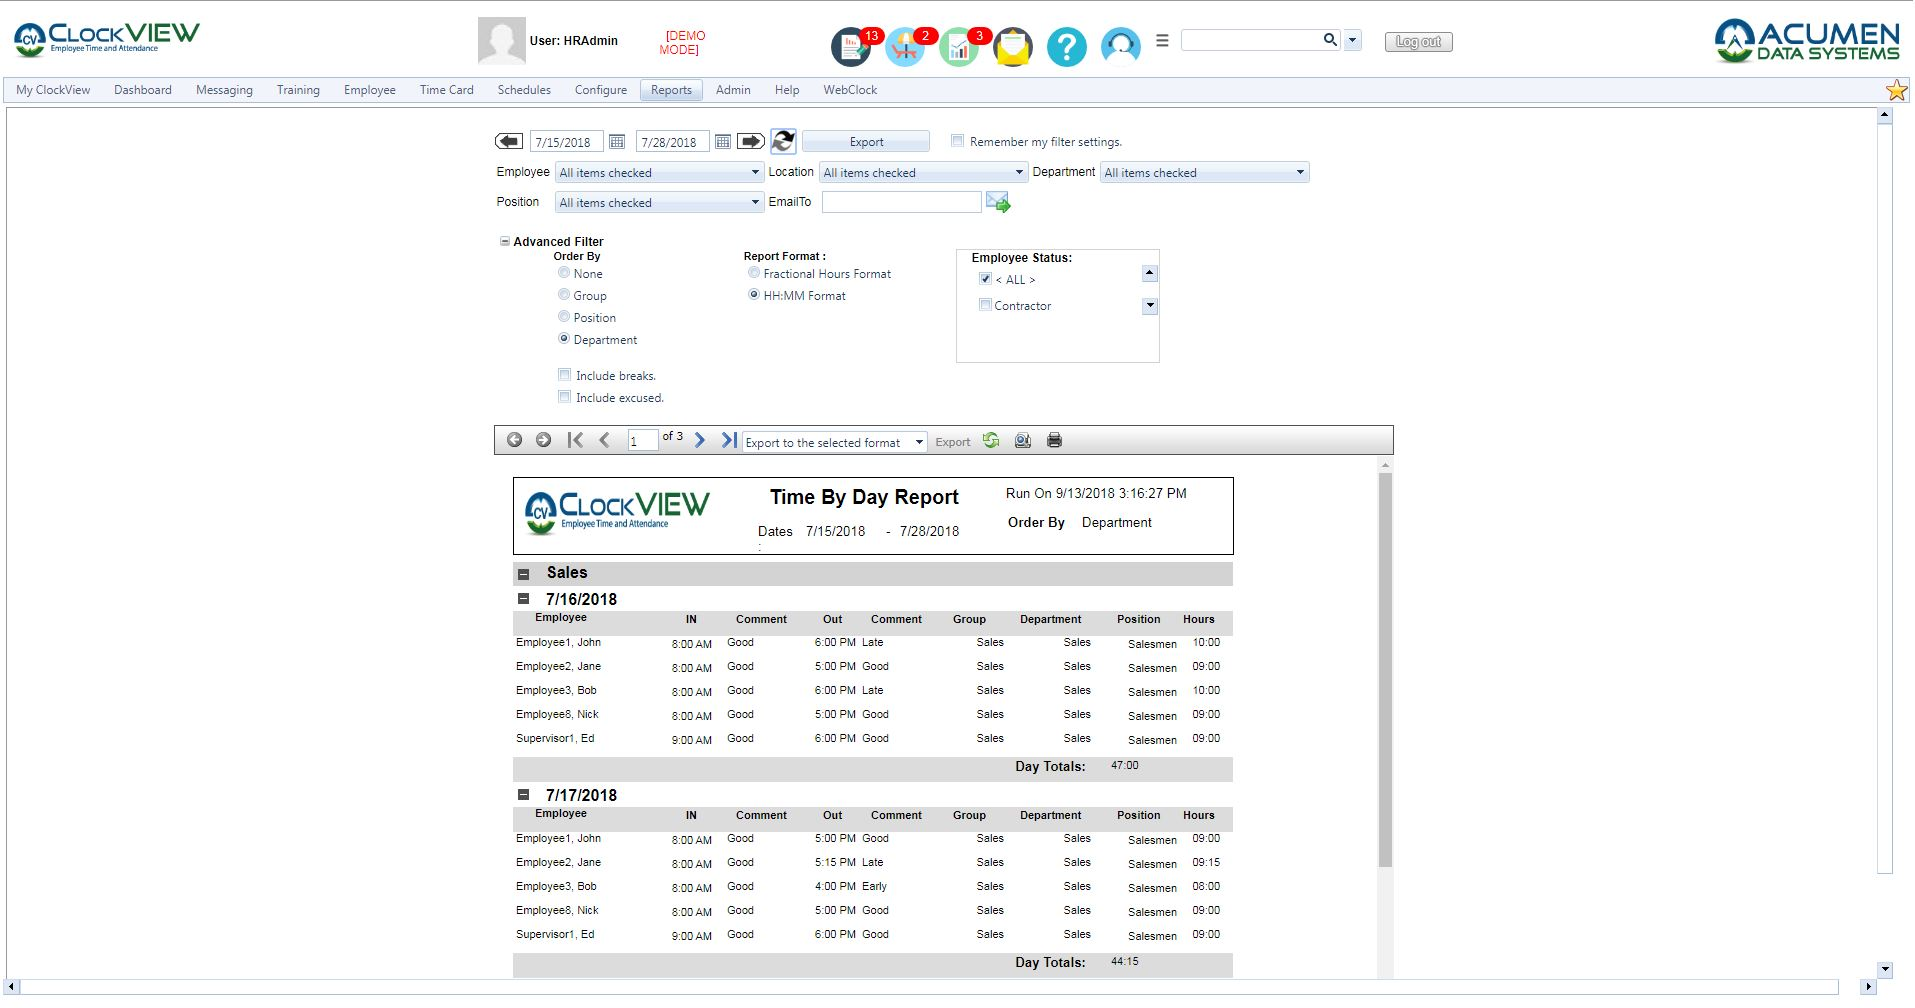 ClockVIEW Employee Time by Day Report